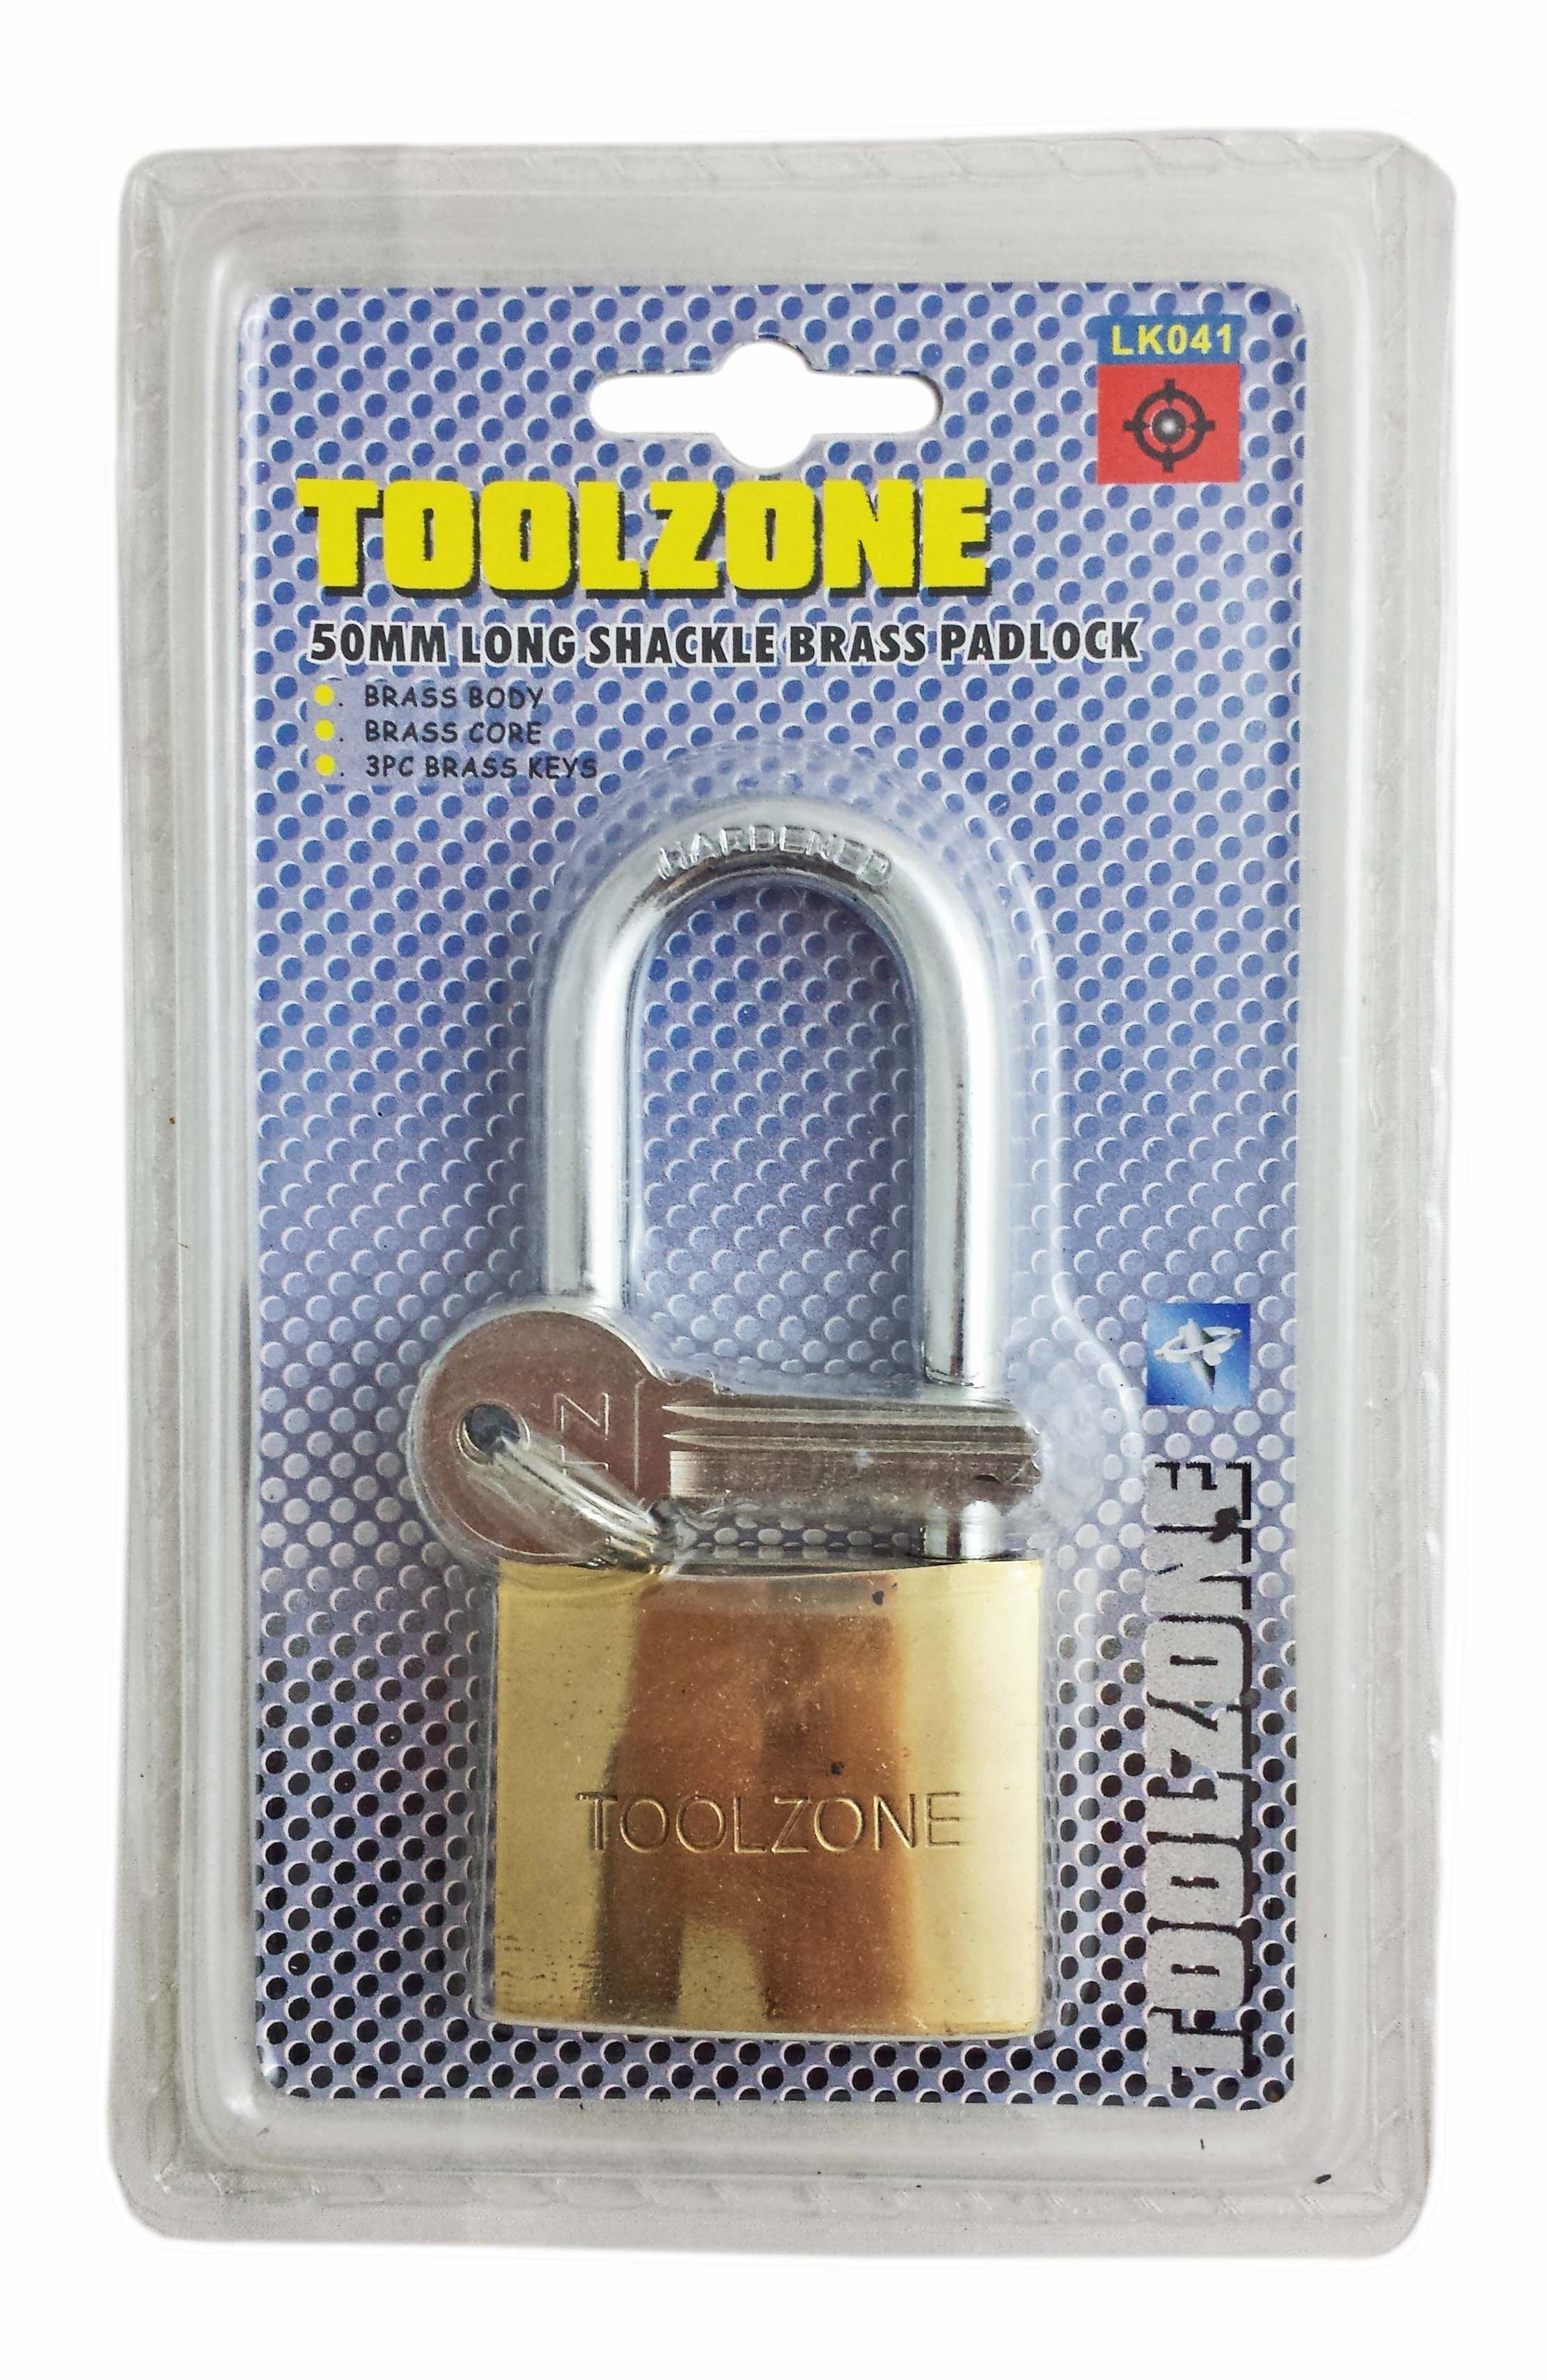 Toolzone 50Mm Brass Long Shank Padlock